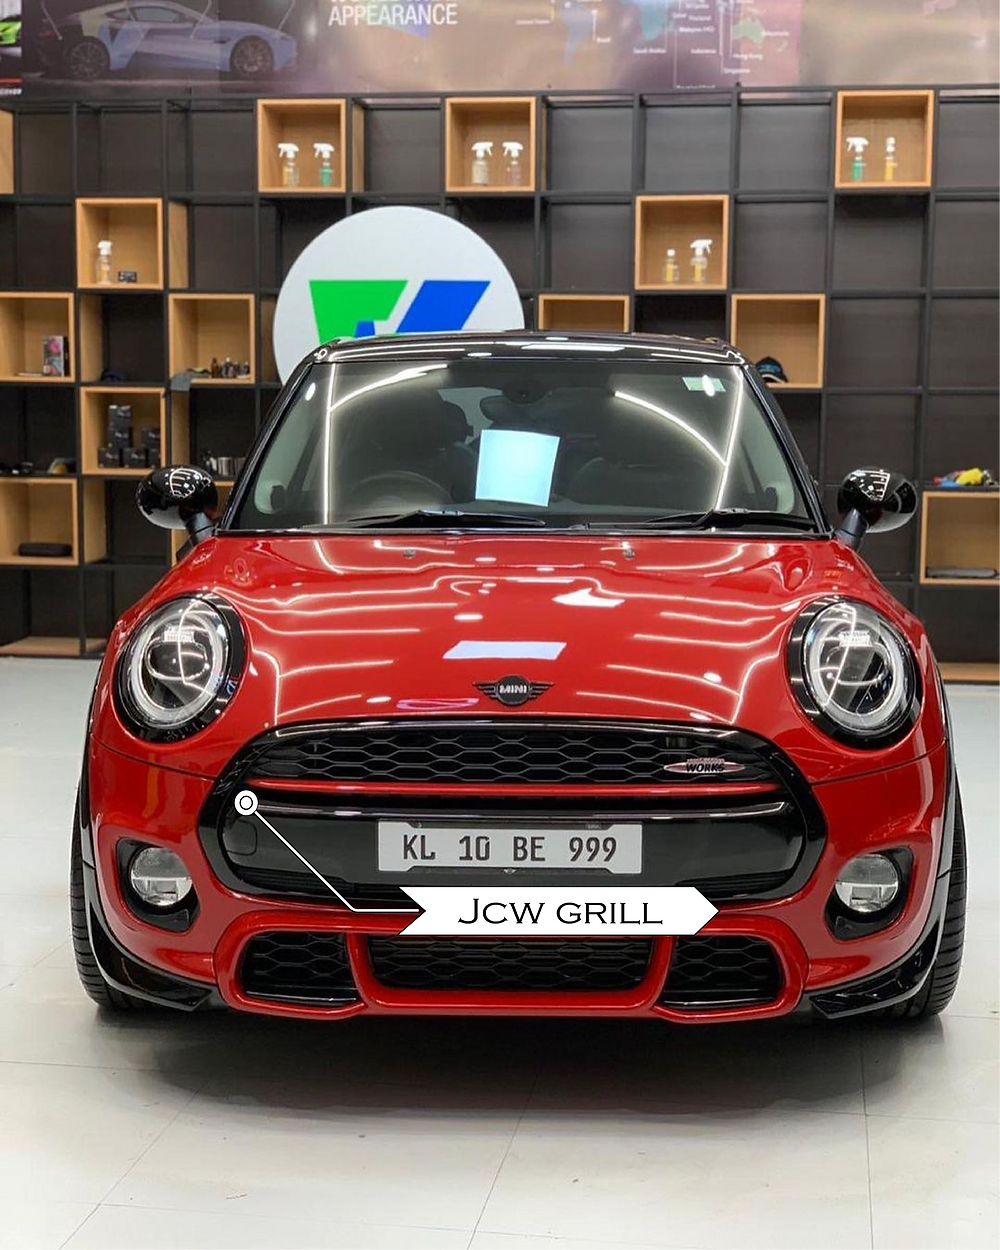 Modified Mini Cooper with JCW front grill